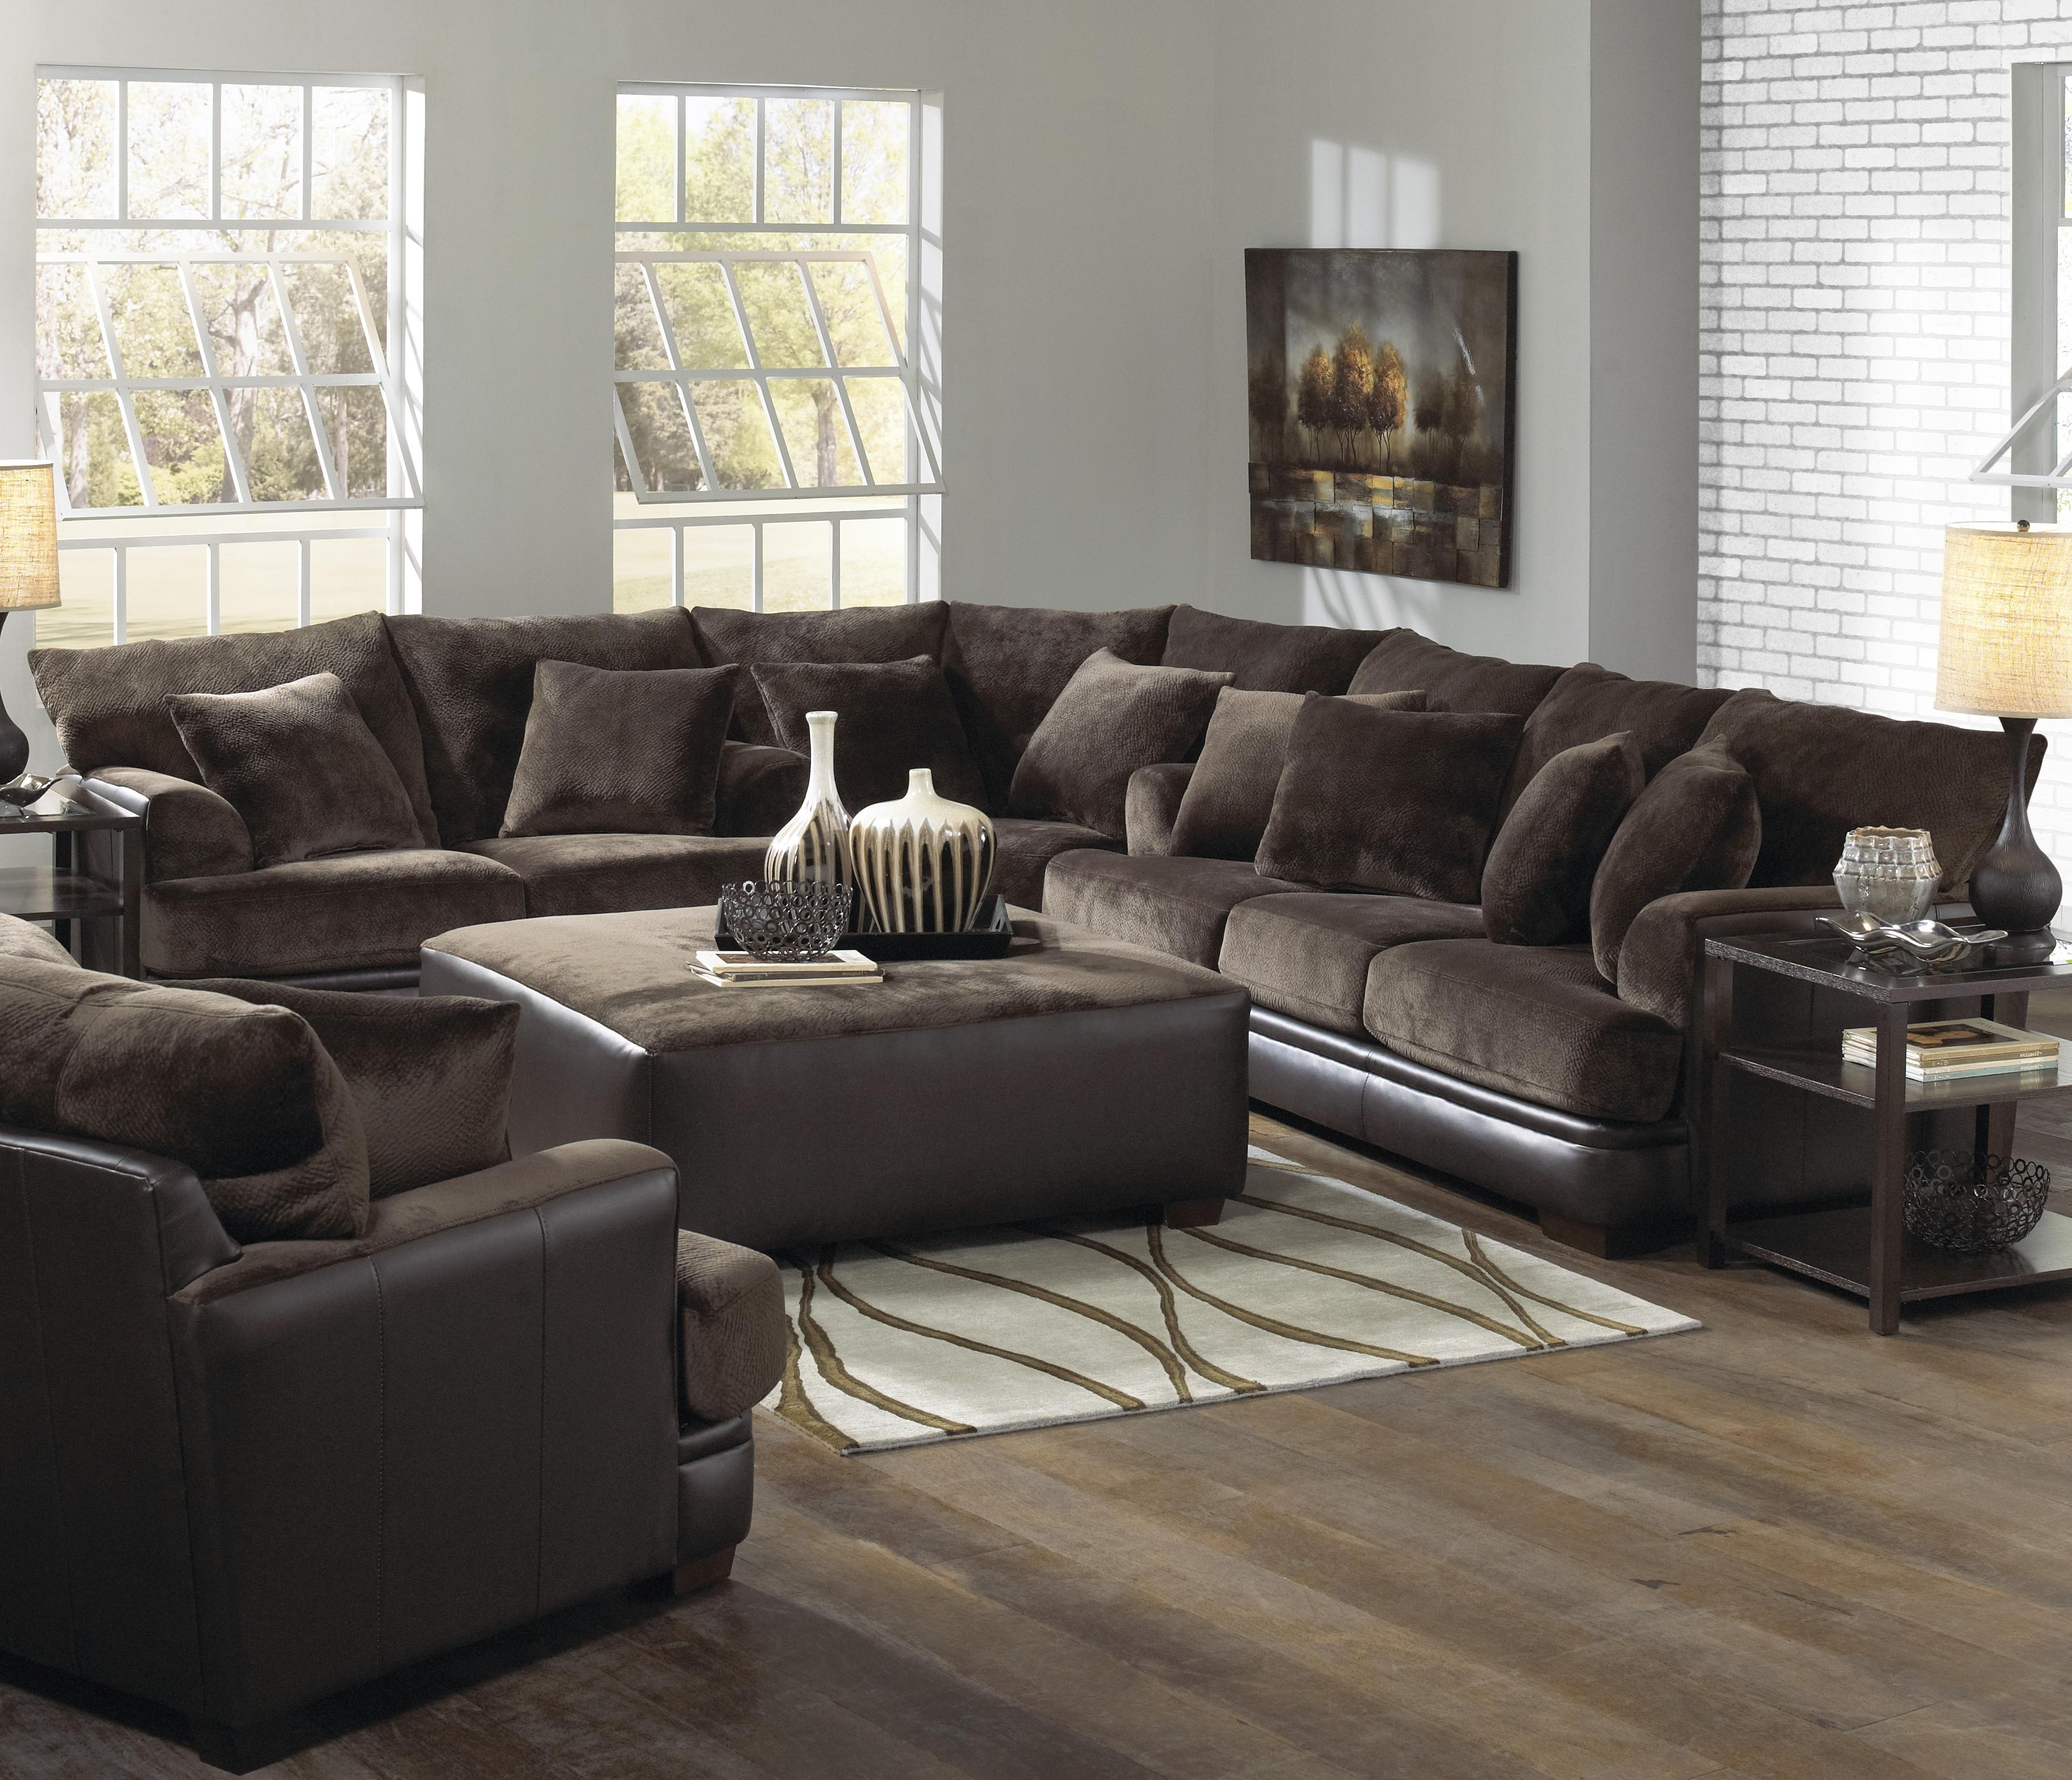 Microsuede Sectional Sofas With Regard To Well Liked L Couch (View 14 of 20)